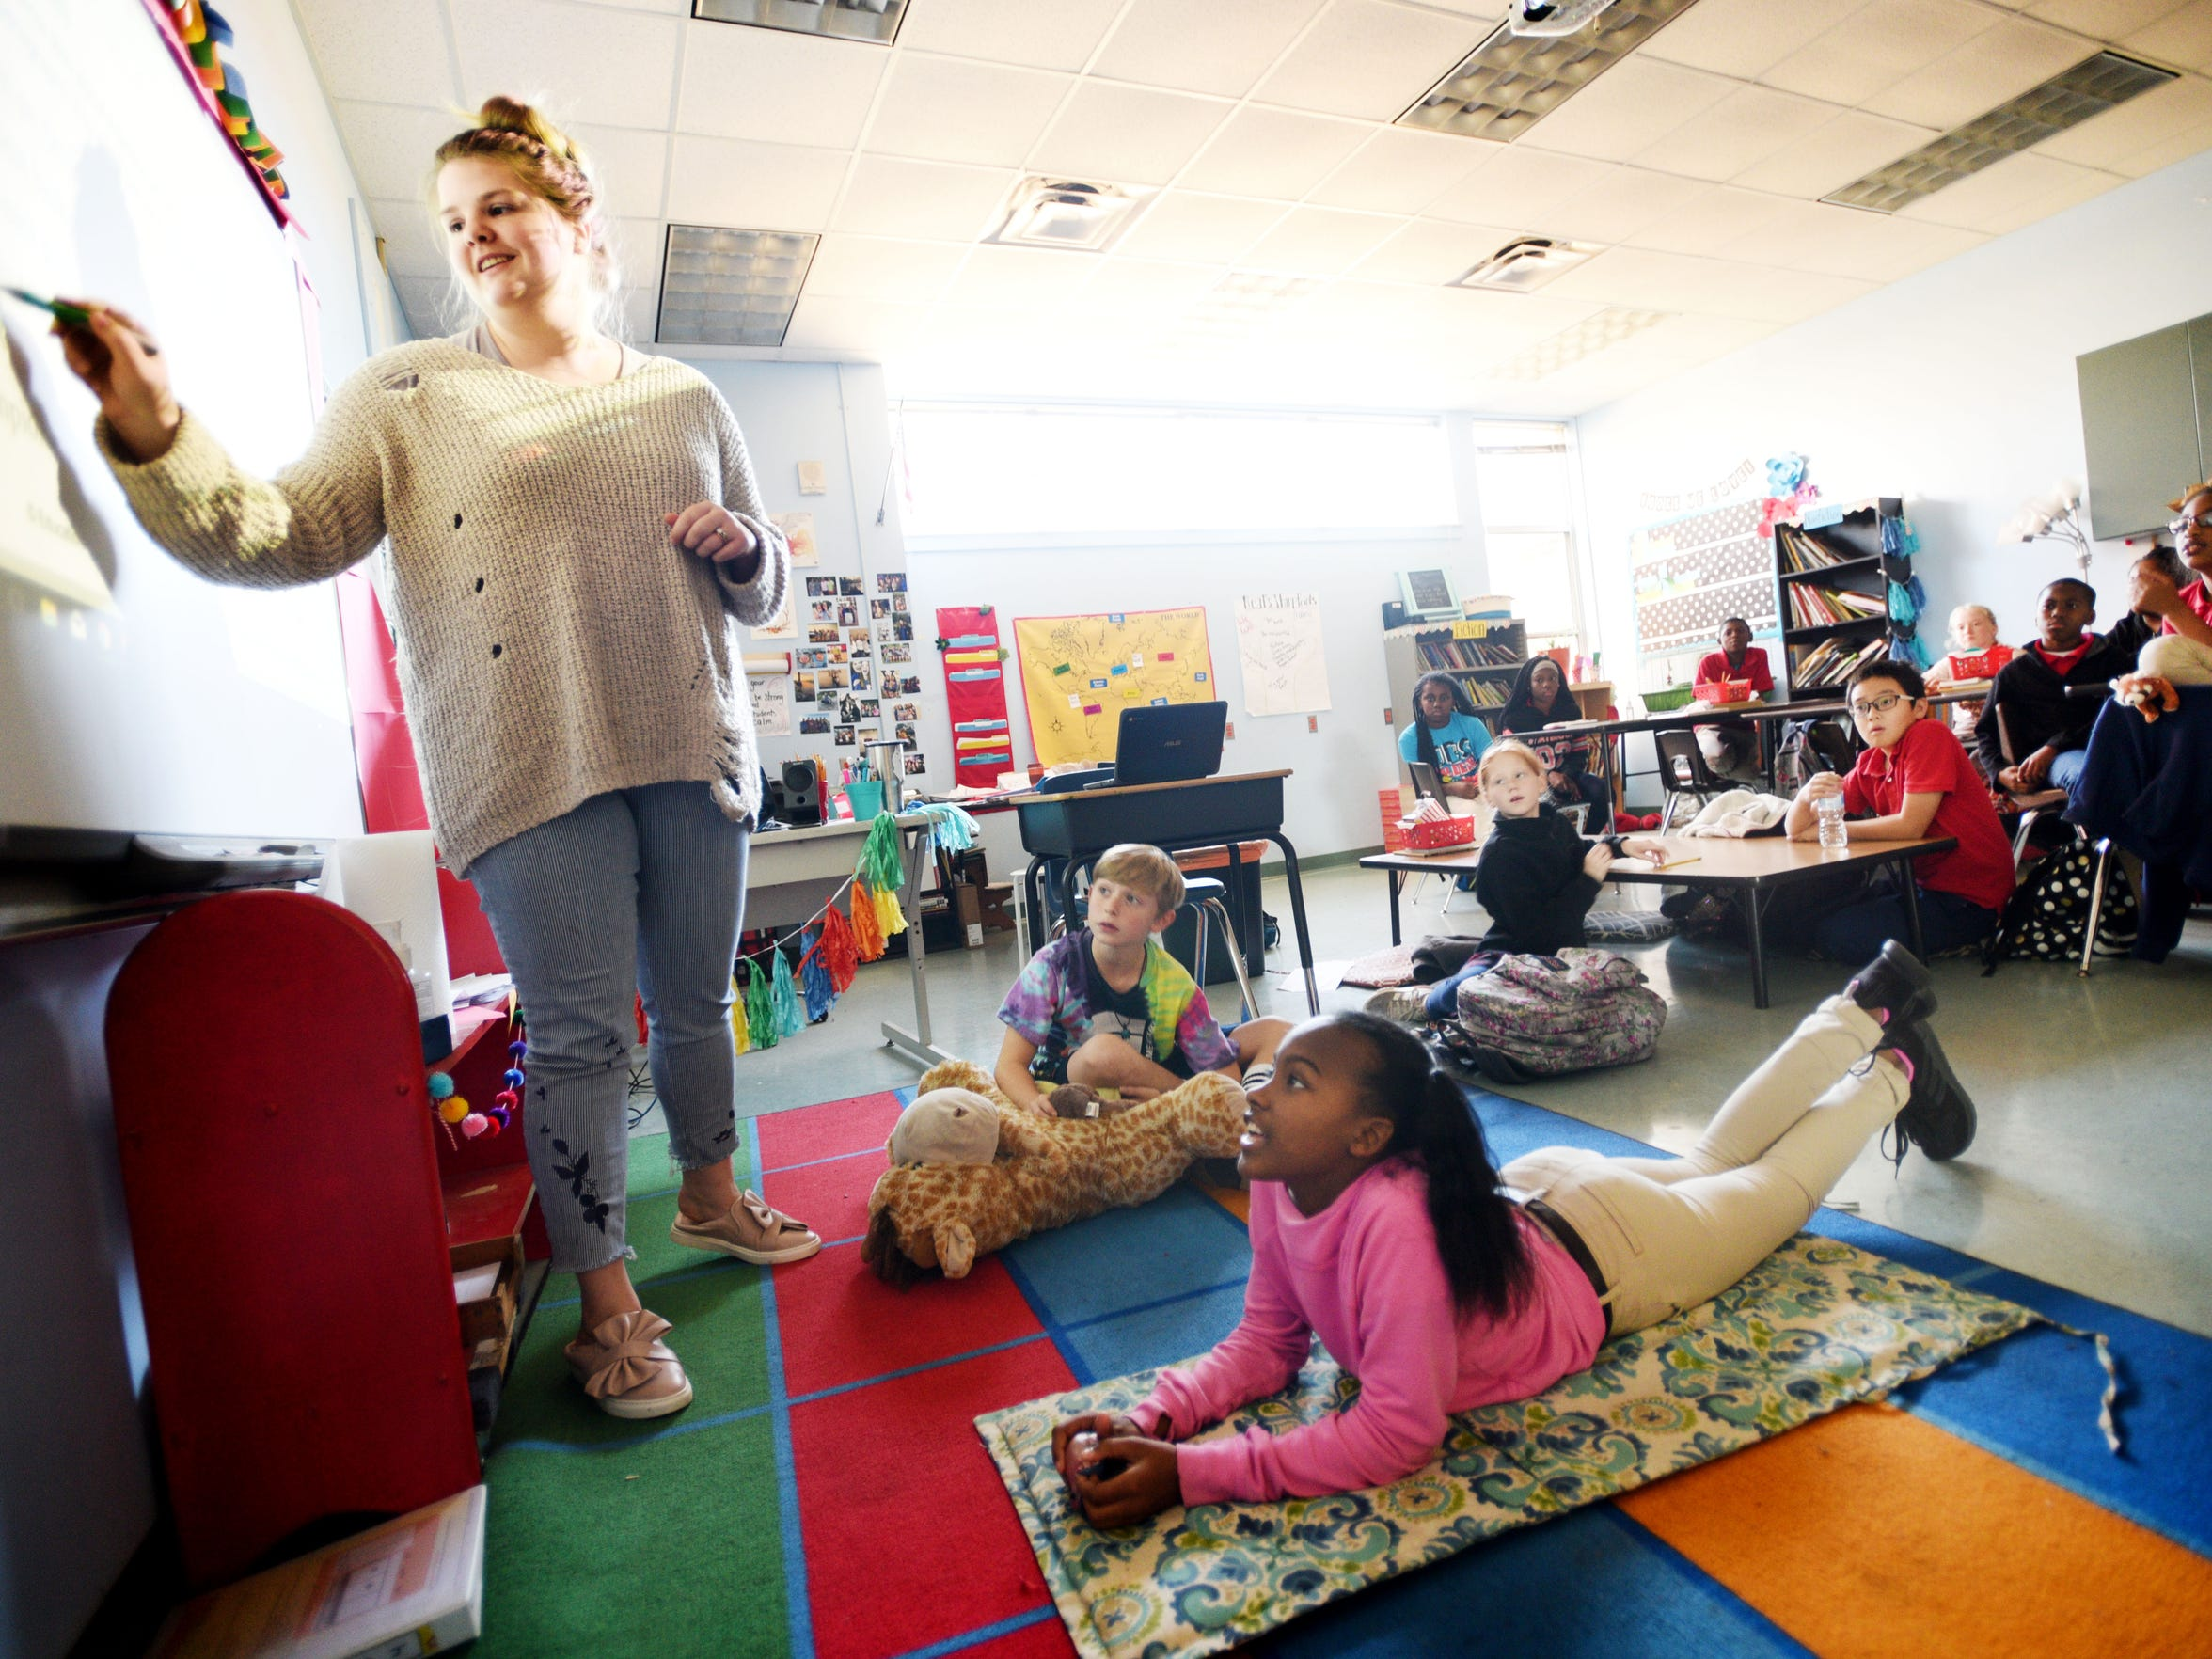 University Elementary student Kaley Jenkins listens to her teacher, Amber Neal, in a relaxed classroom Tuesday, December 4, 2018.